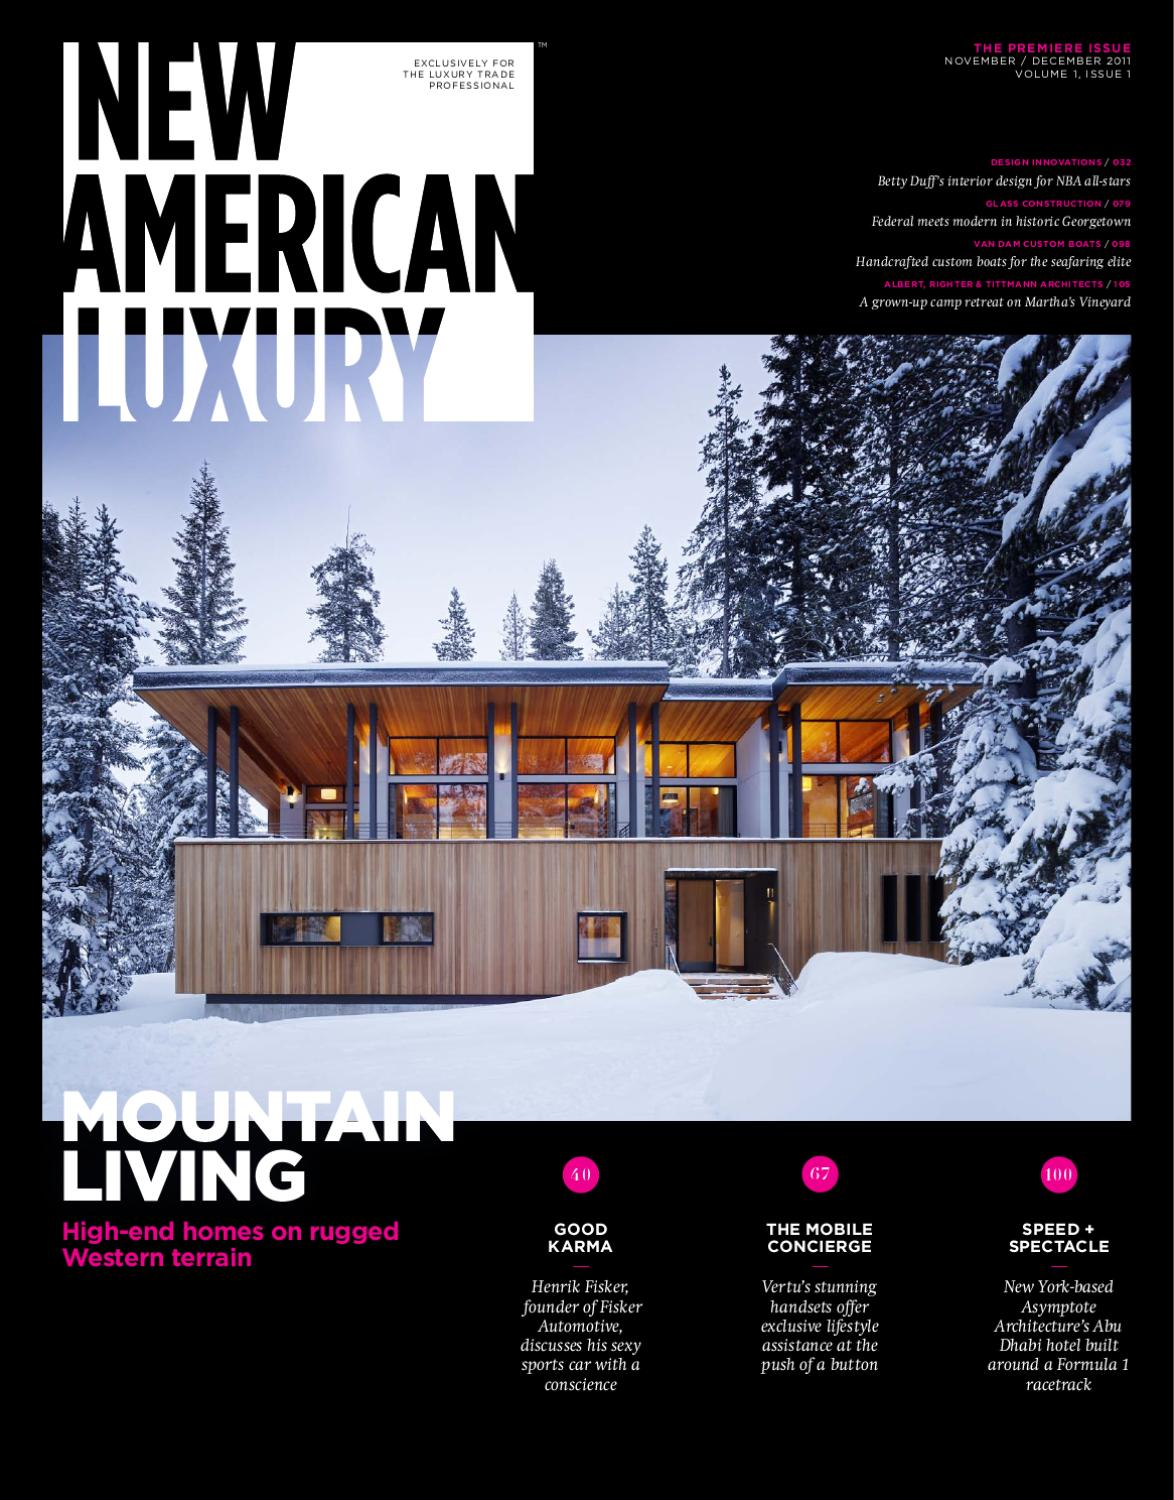 New American Luxury Issue 1 by Molly Soat - issuu